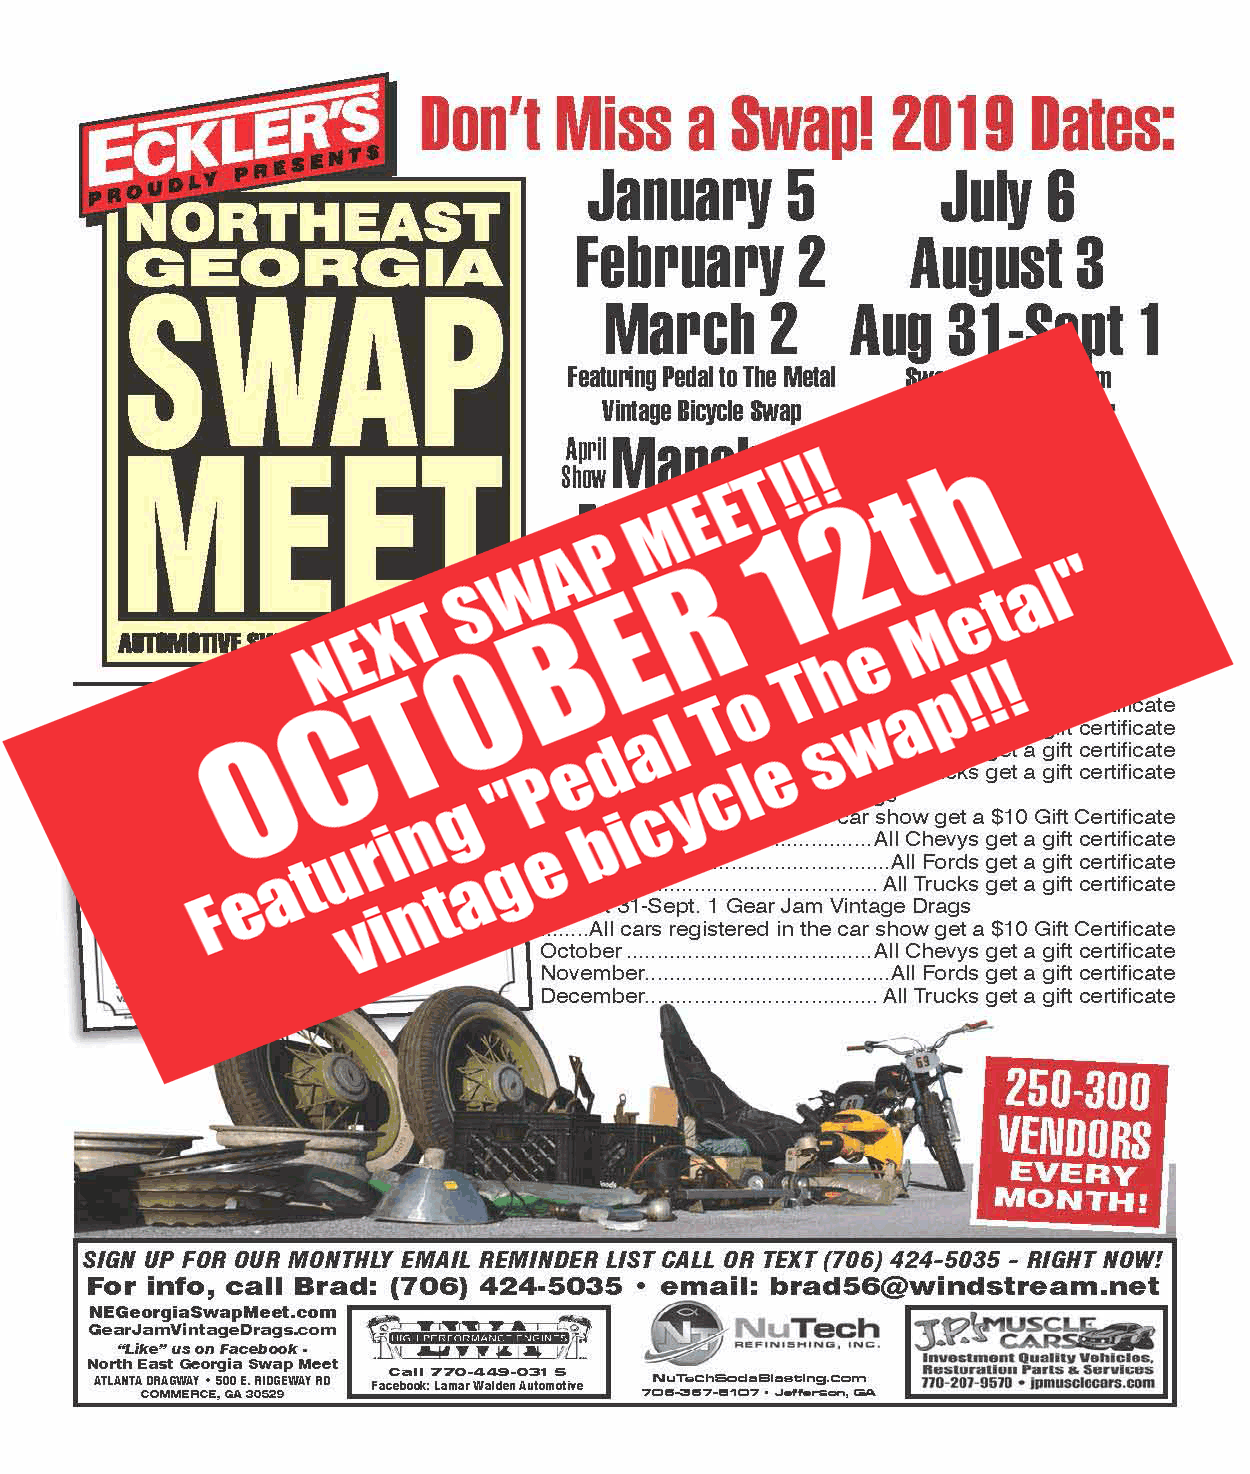 http://negeorgiaswapmeet.com/wp-content/uploads/2019/09/NEGSM-2019-Schedule-Flyer-Featuring-Pedal-To-The-Metal-vintage-bicycle-swap.png